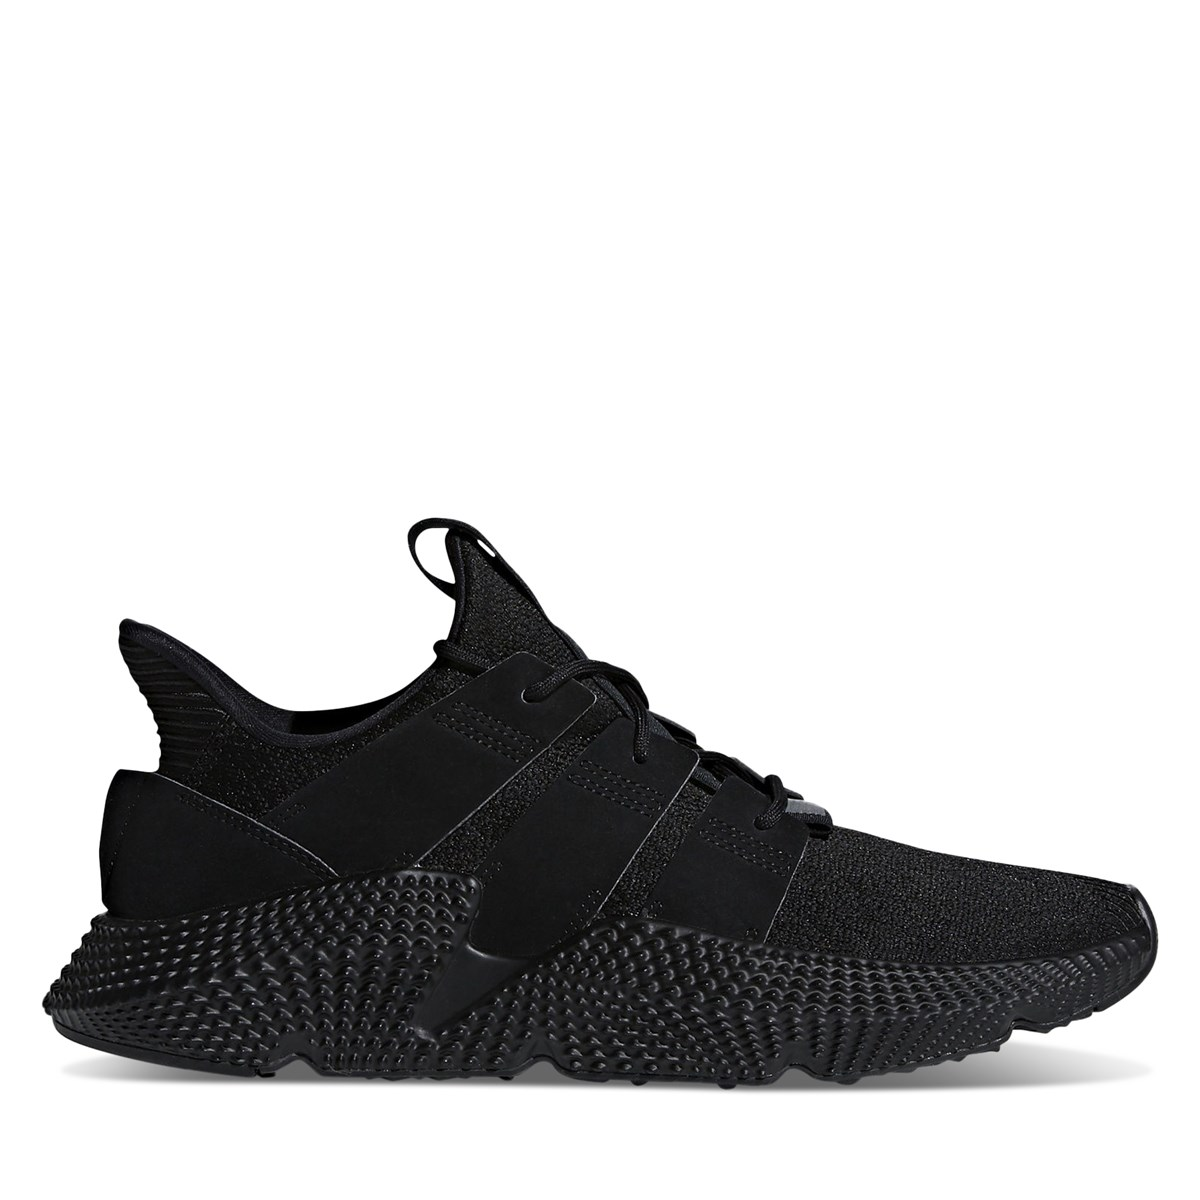 Men's Prophere Sneaker in Black